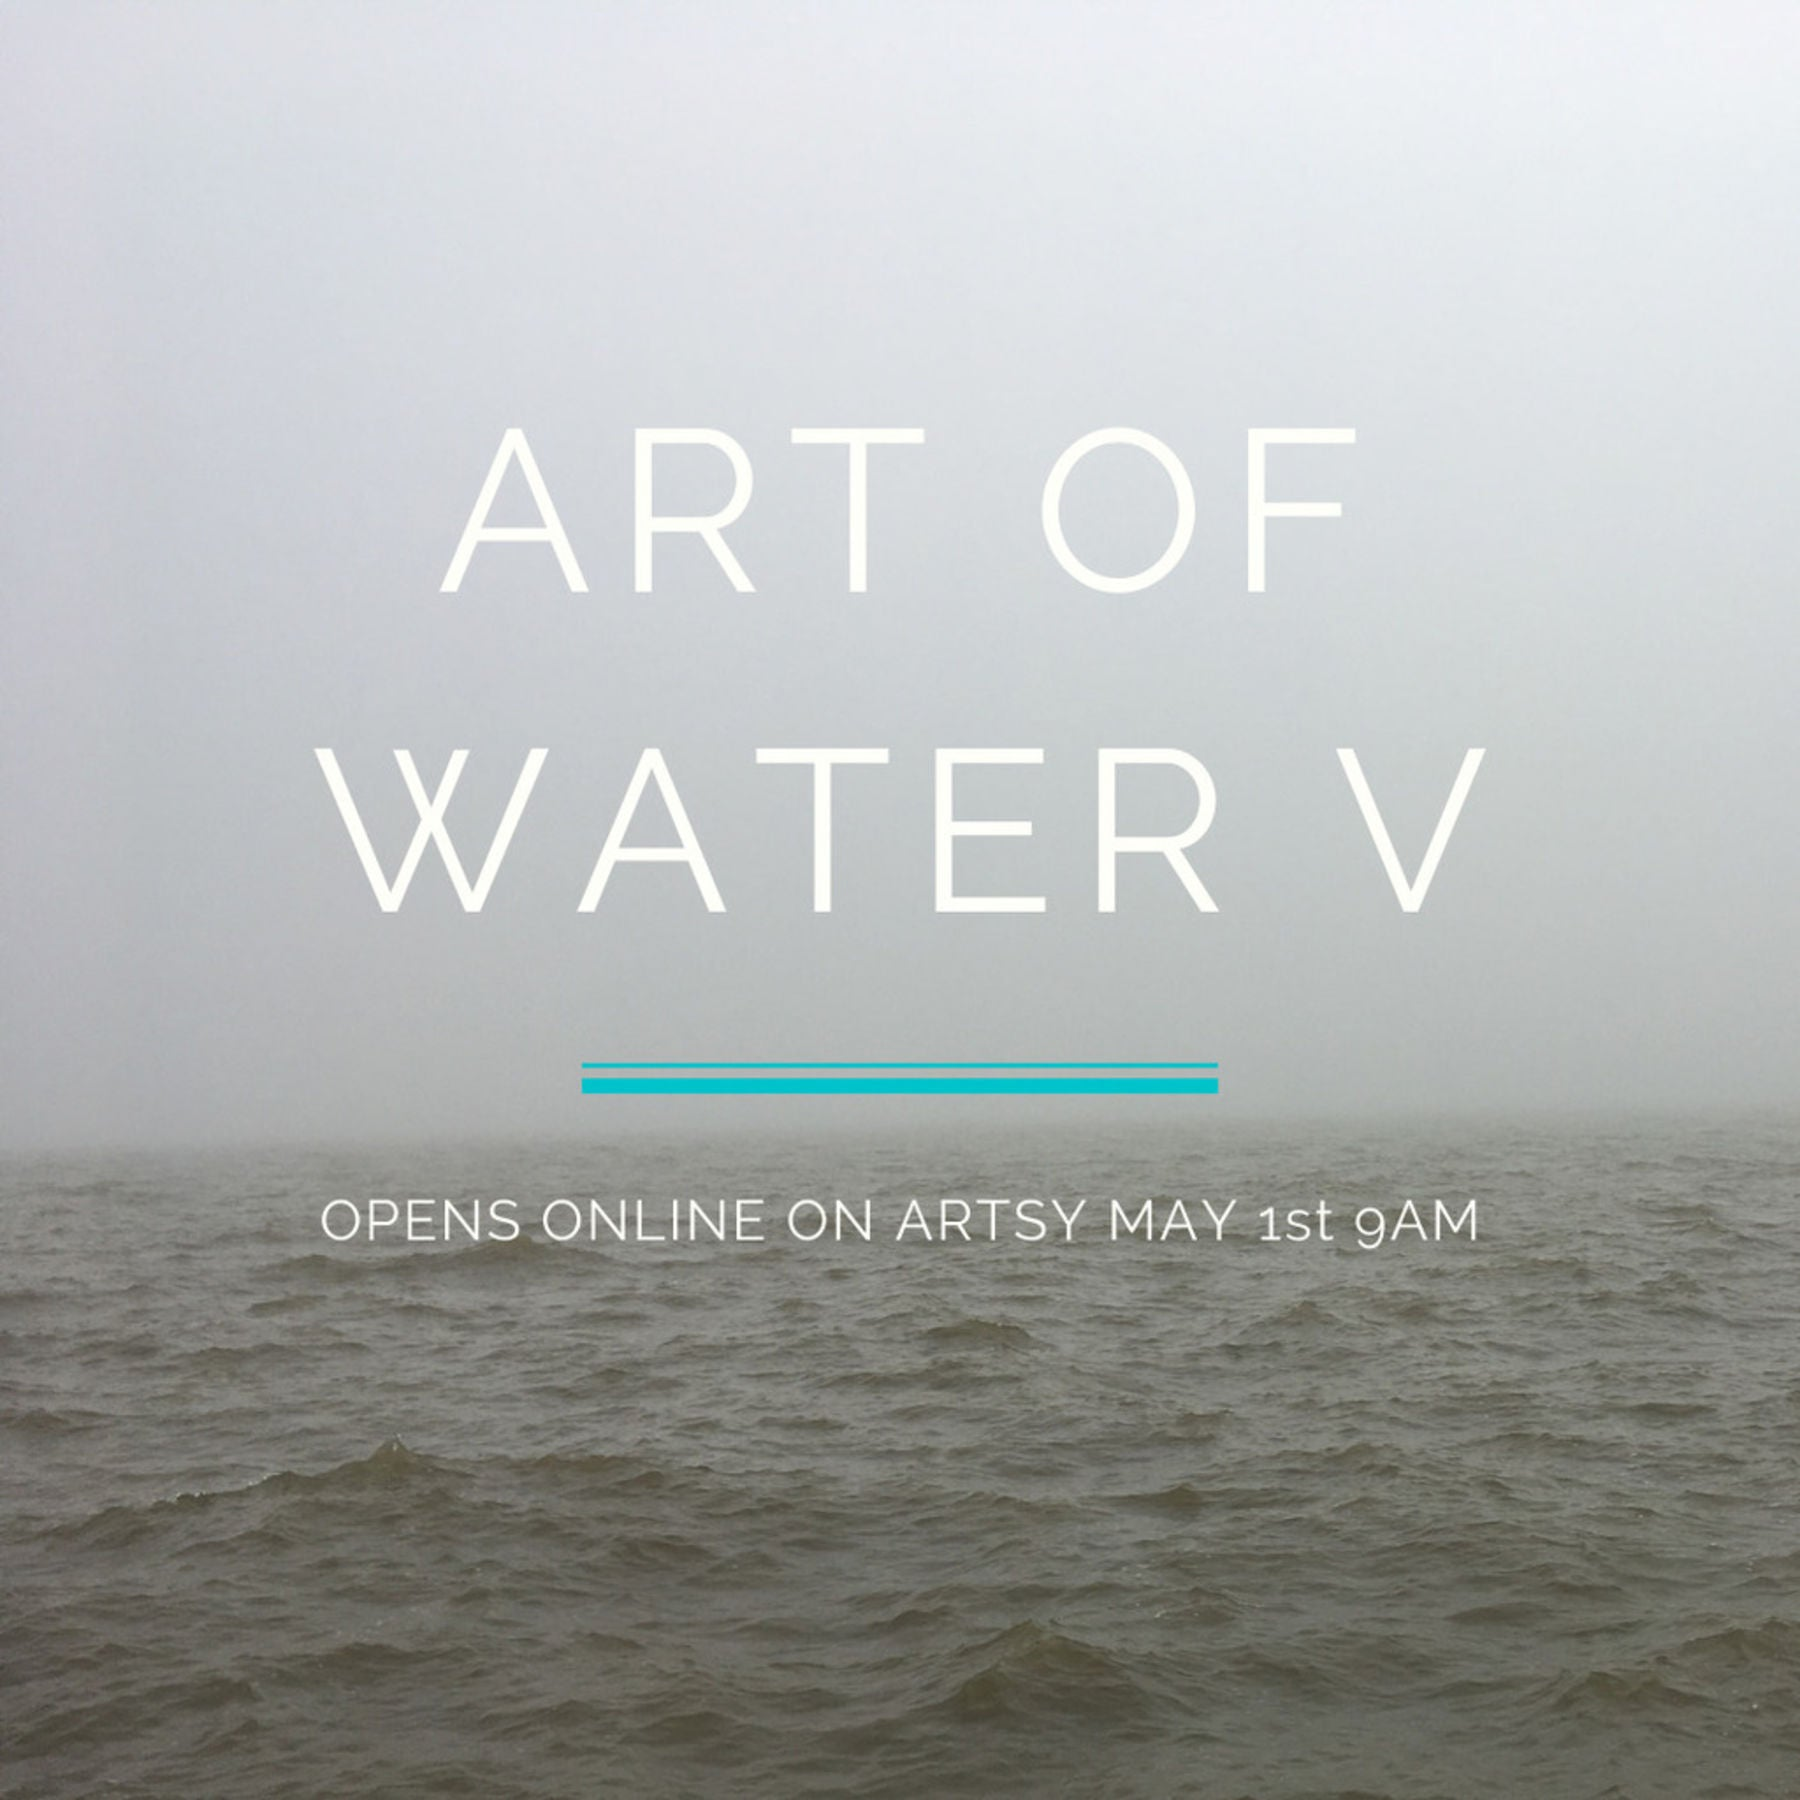 Art of Water V Exhibition